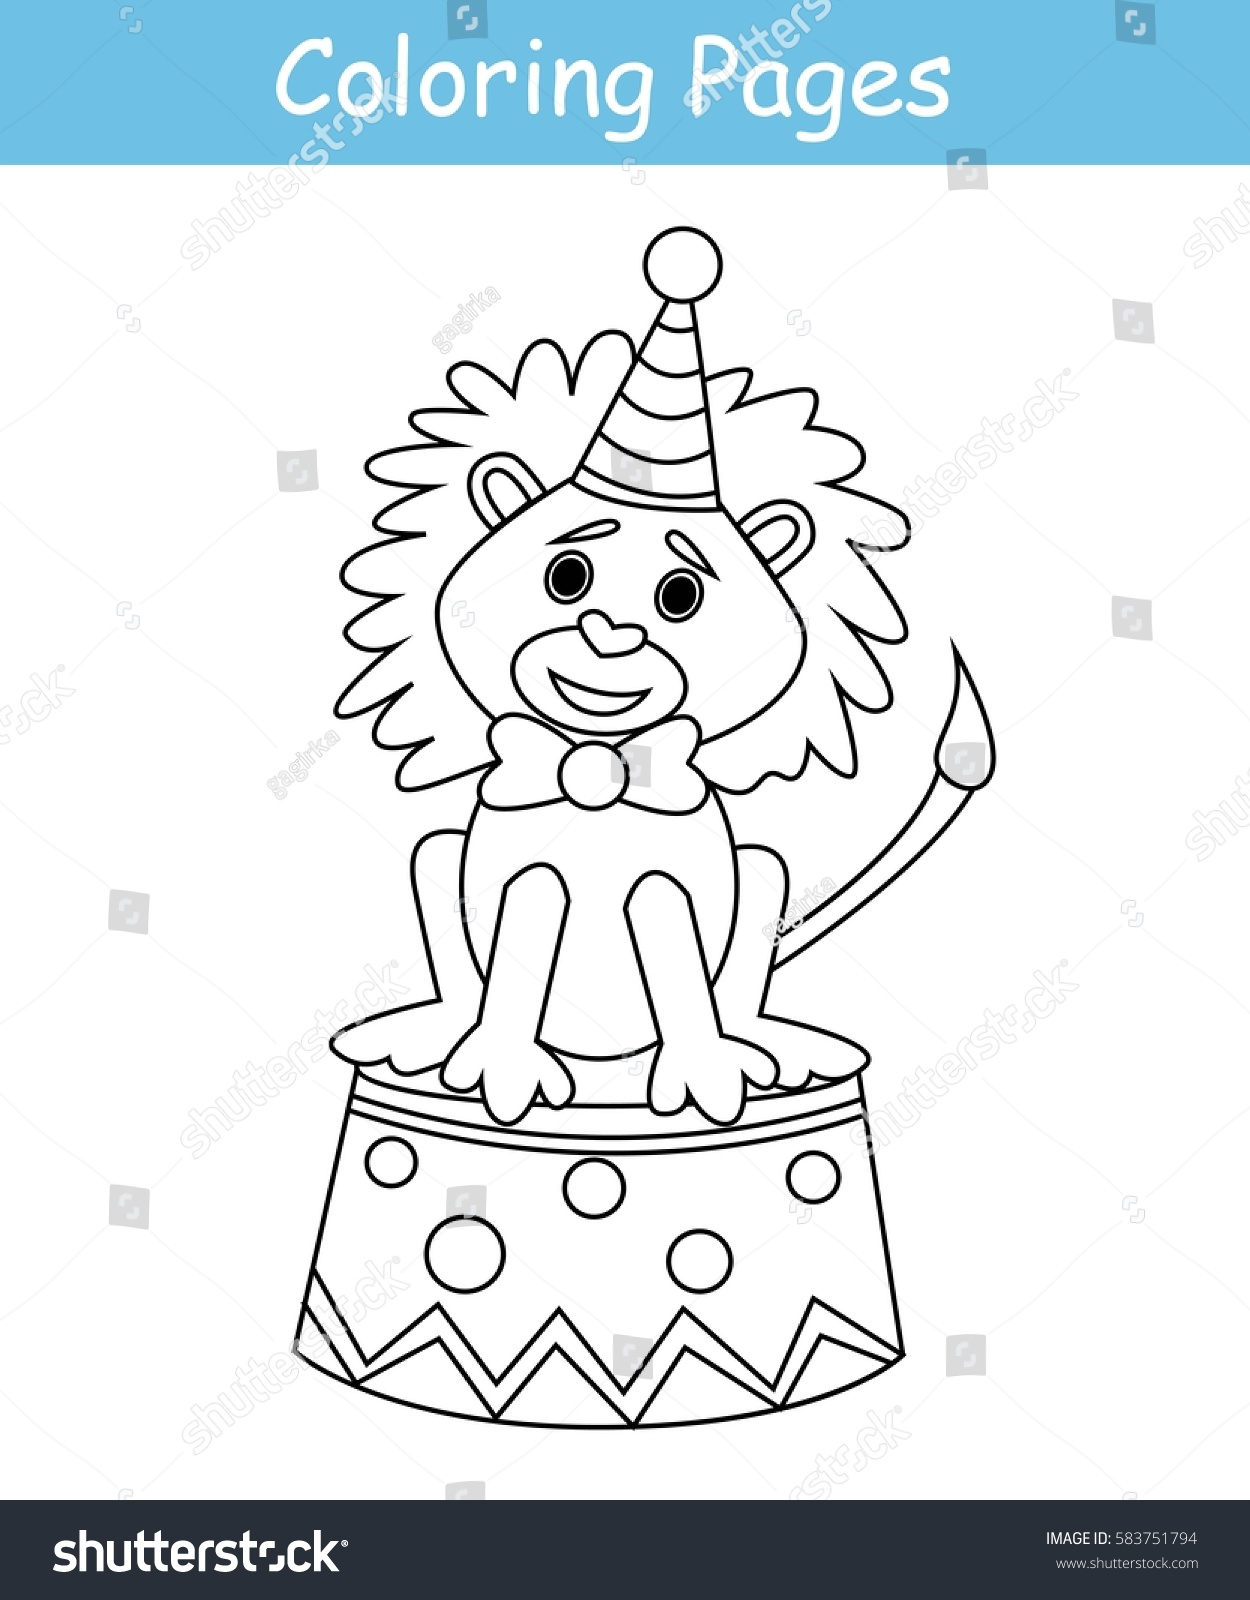 Coloring Pages Circus Lion Game Kids Stock Vector Royalty